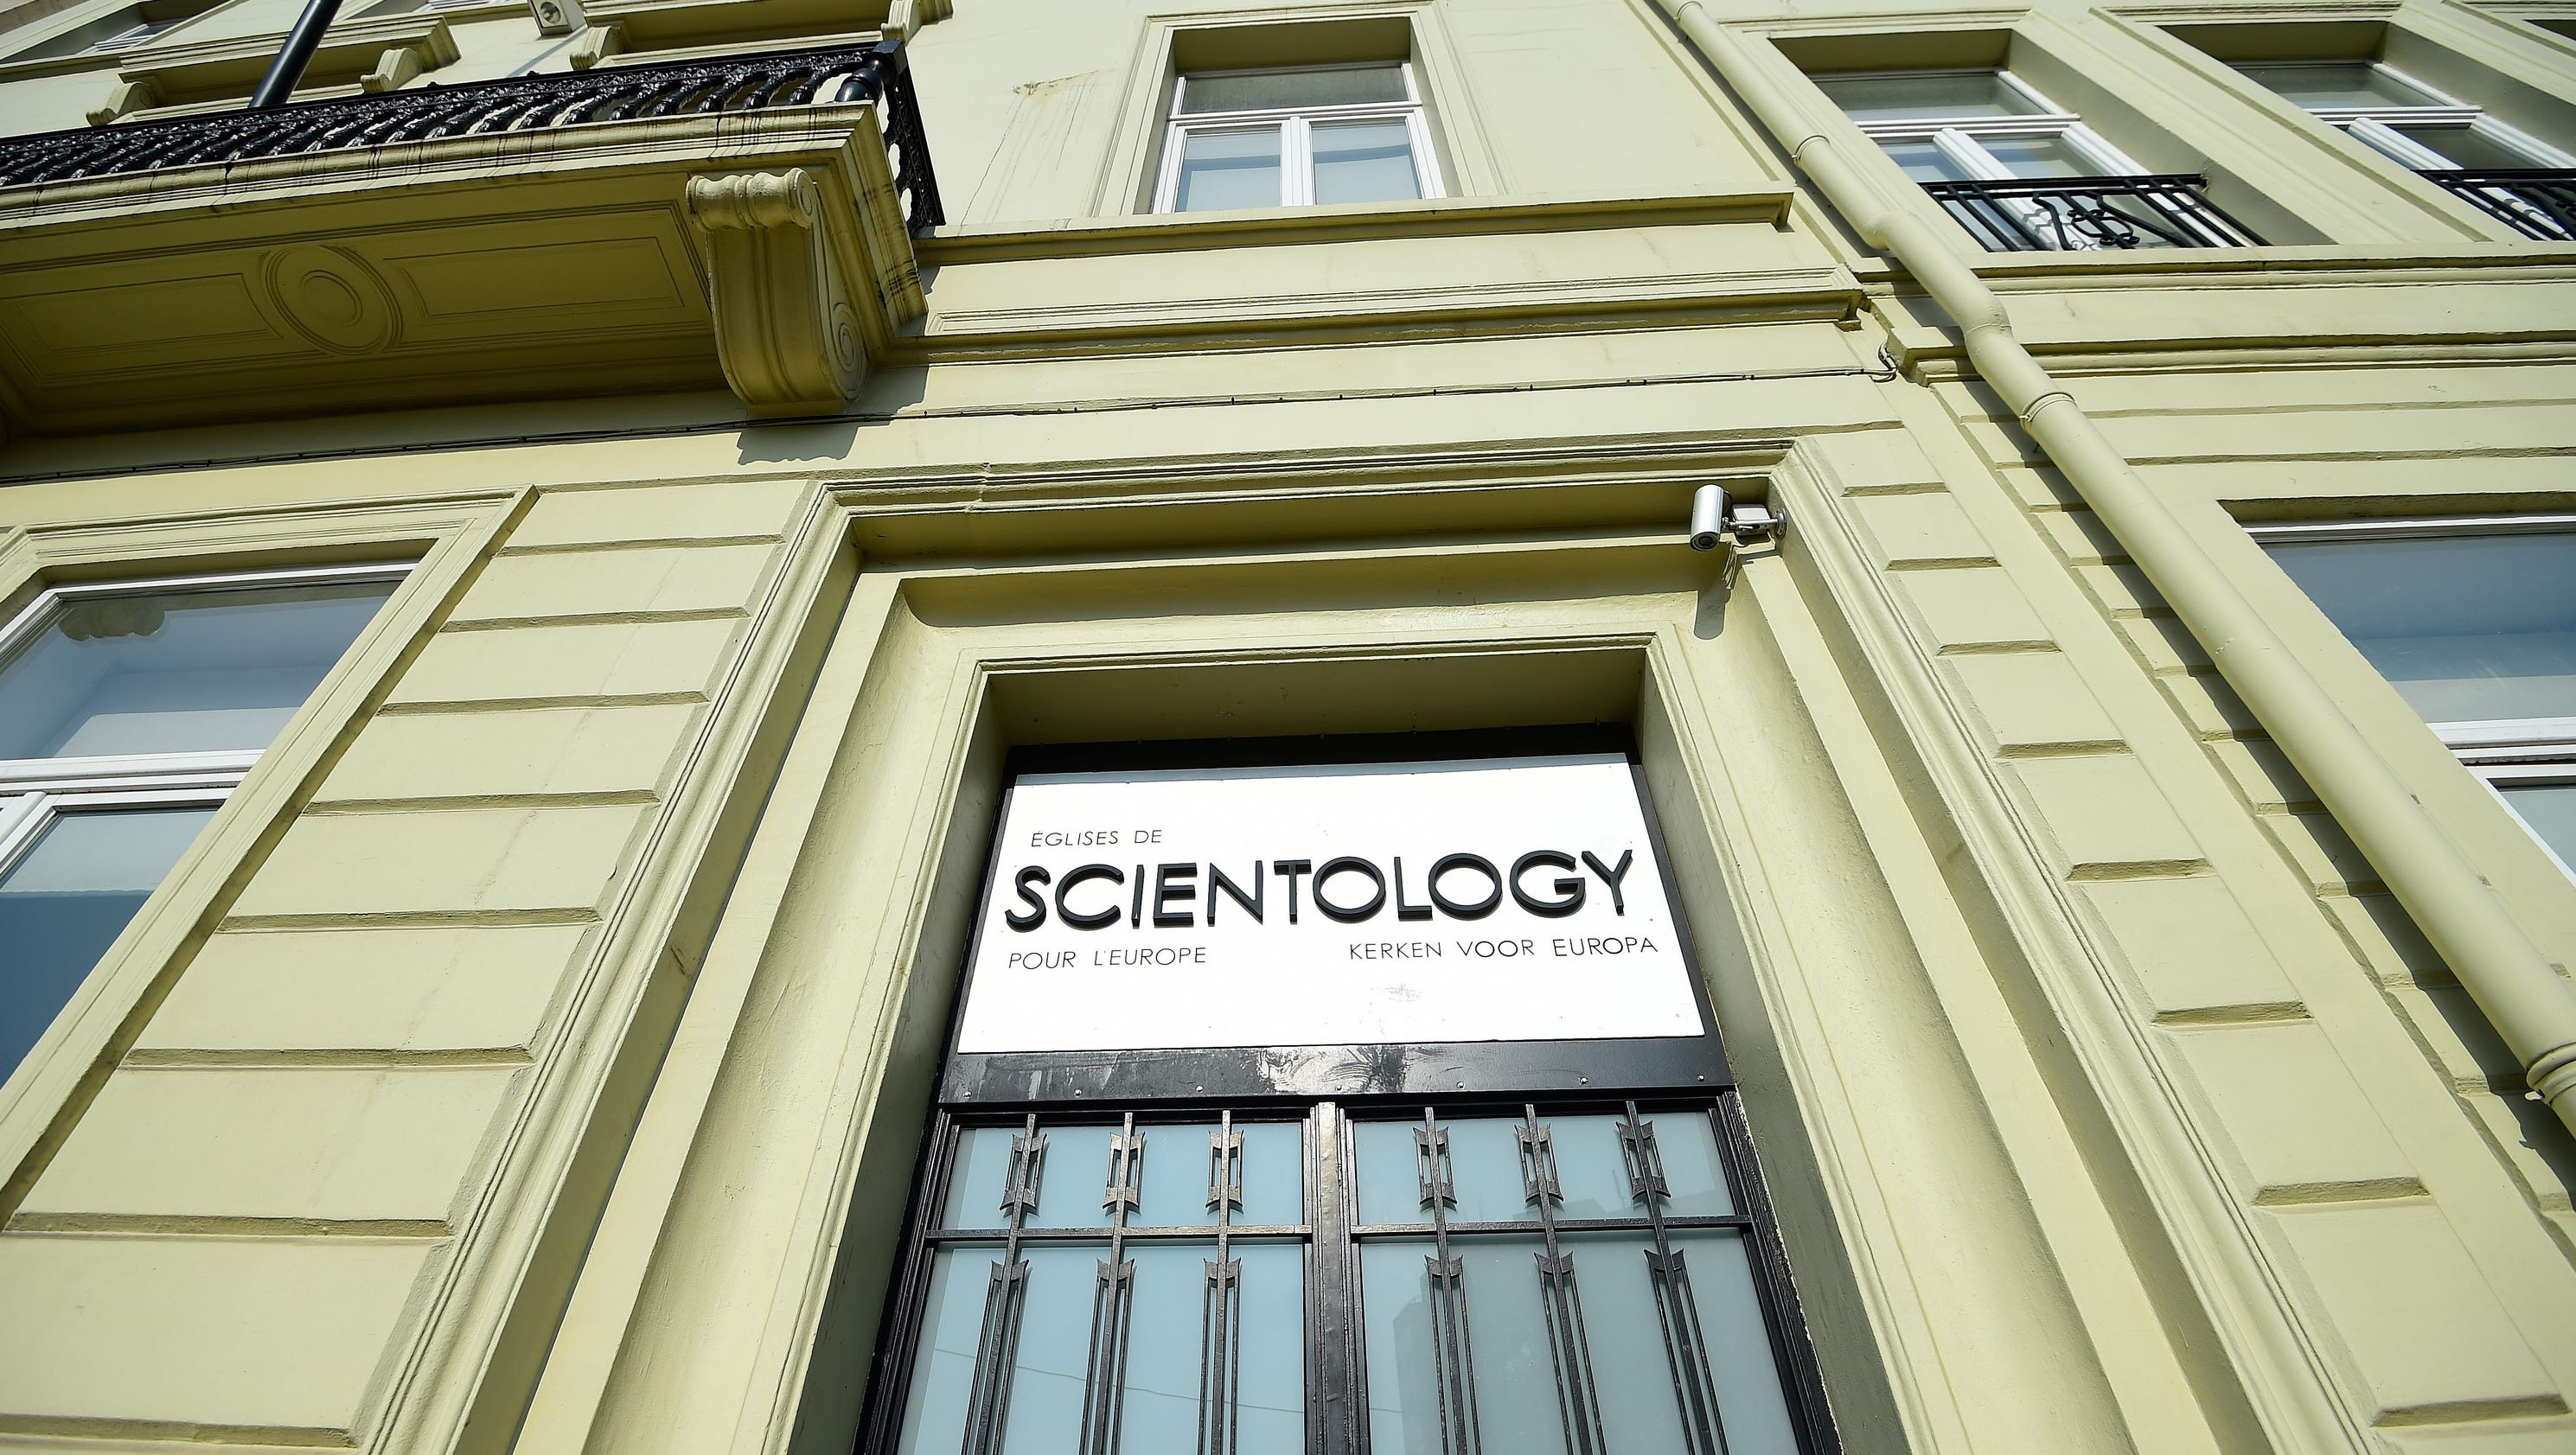 a history of the church of scientology Scientology is one of the wealthiest and most powerful new religions to emerge in the past century to its detractors, l ron hubbard's space-age mysticism is a moneymaking scam and sinister brainwashing cult.